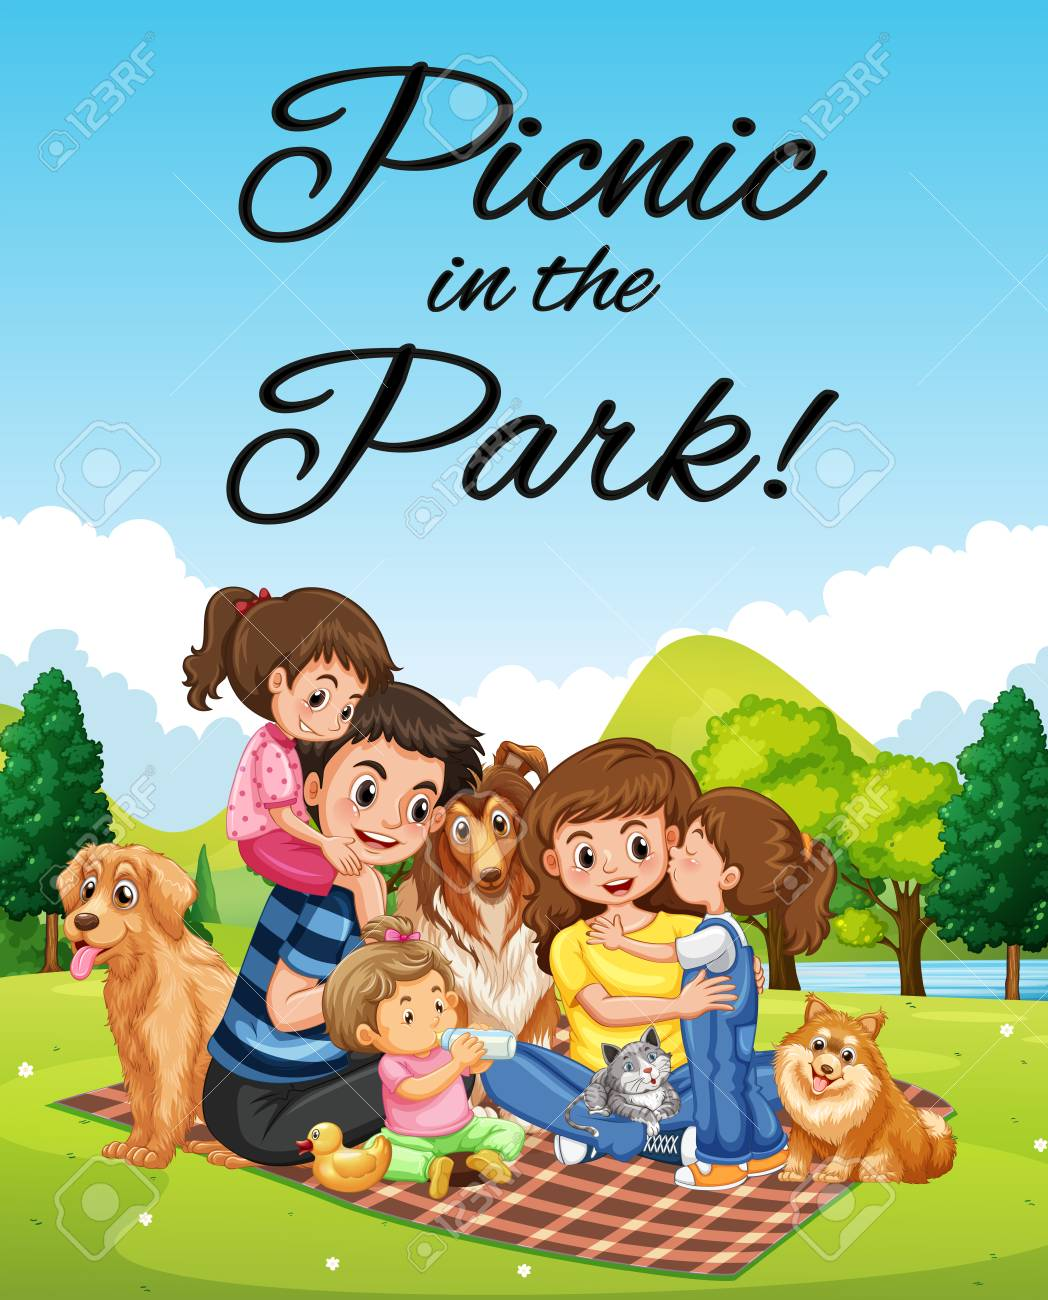 Clip Art - Family picnic in nature. Stock Illustration gg99545716 - GoGraph